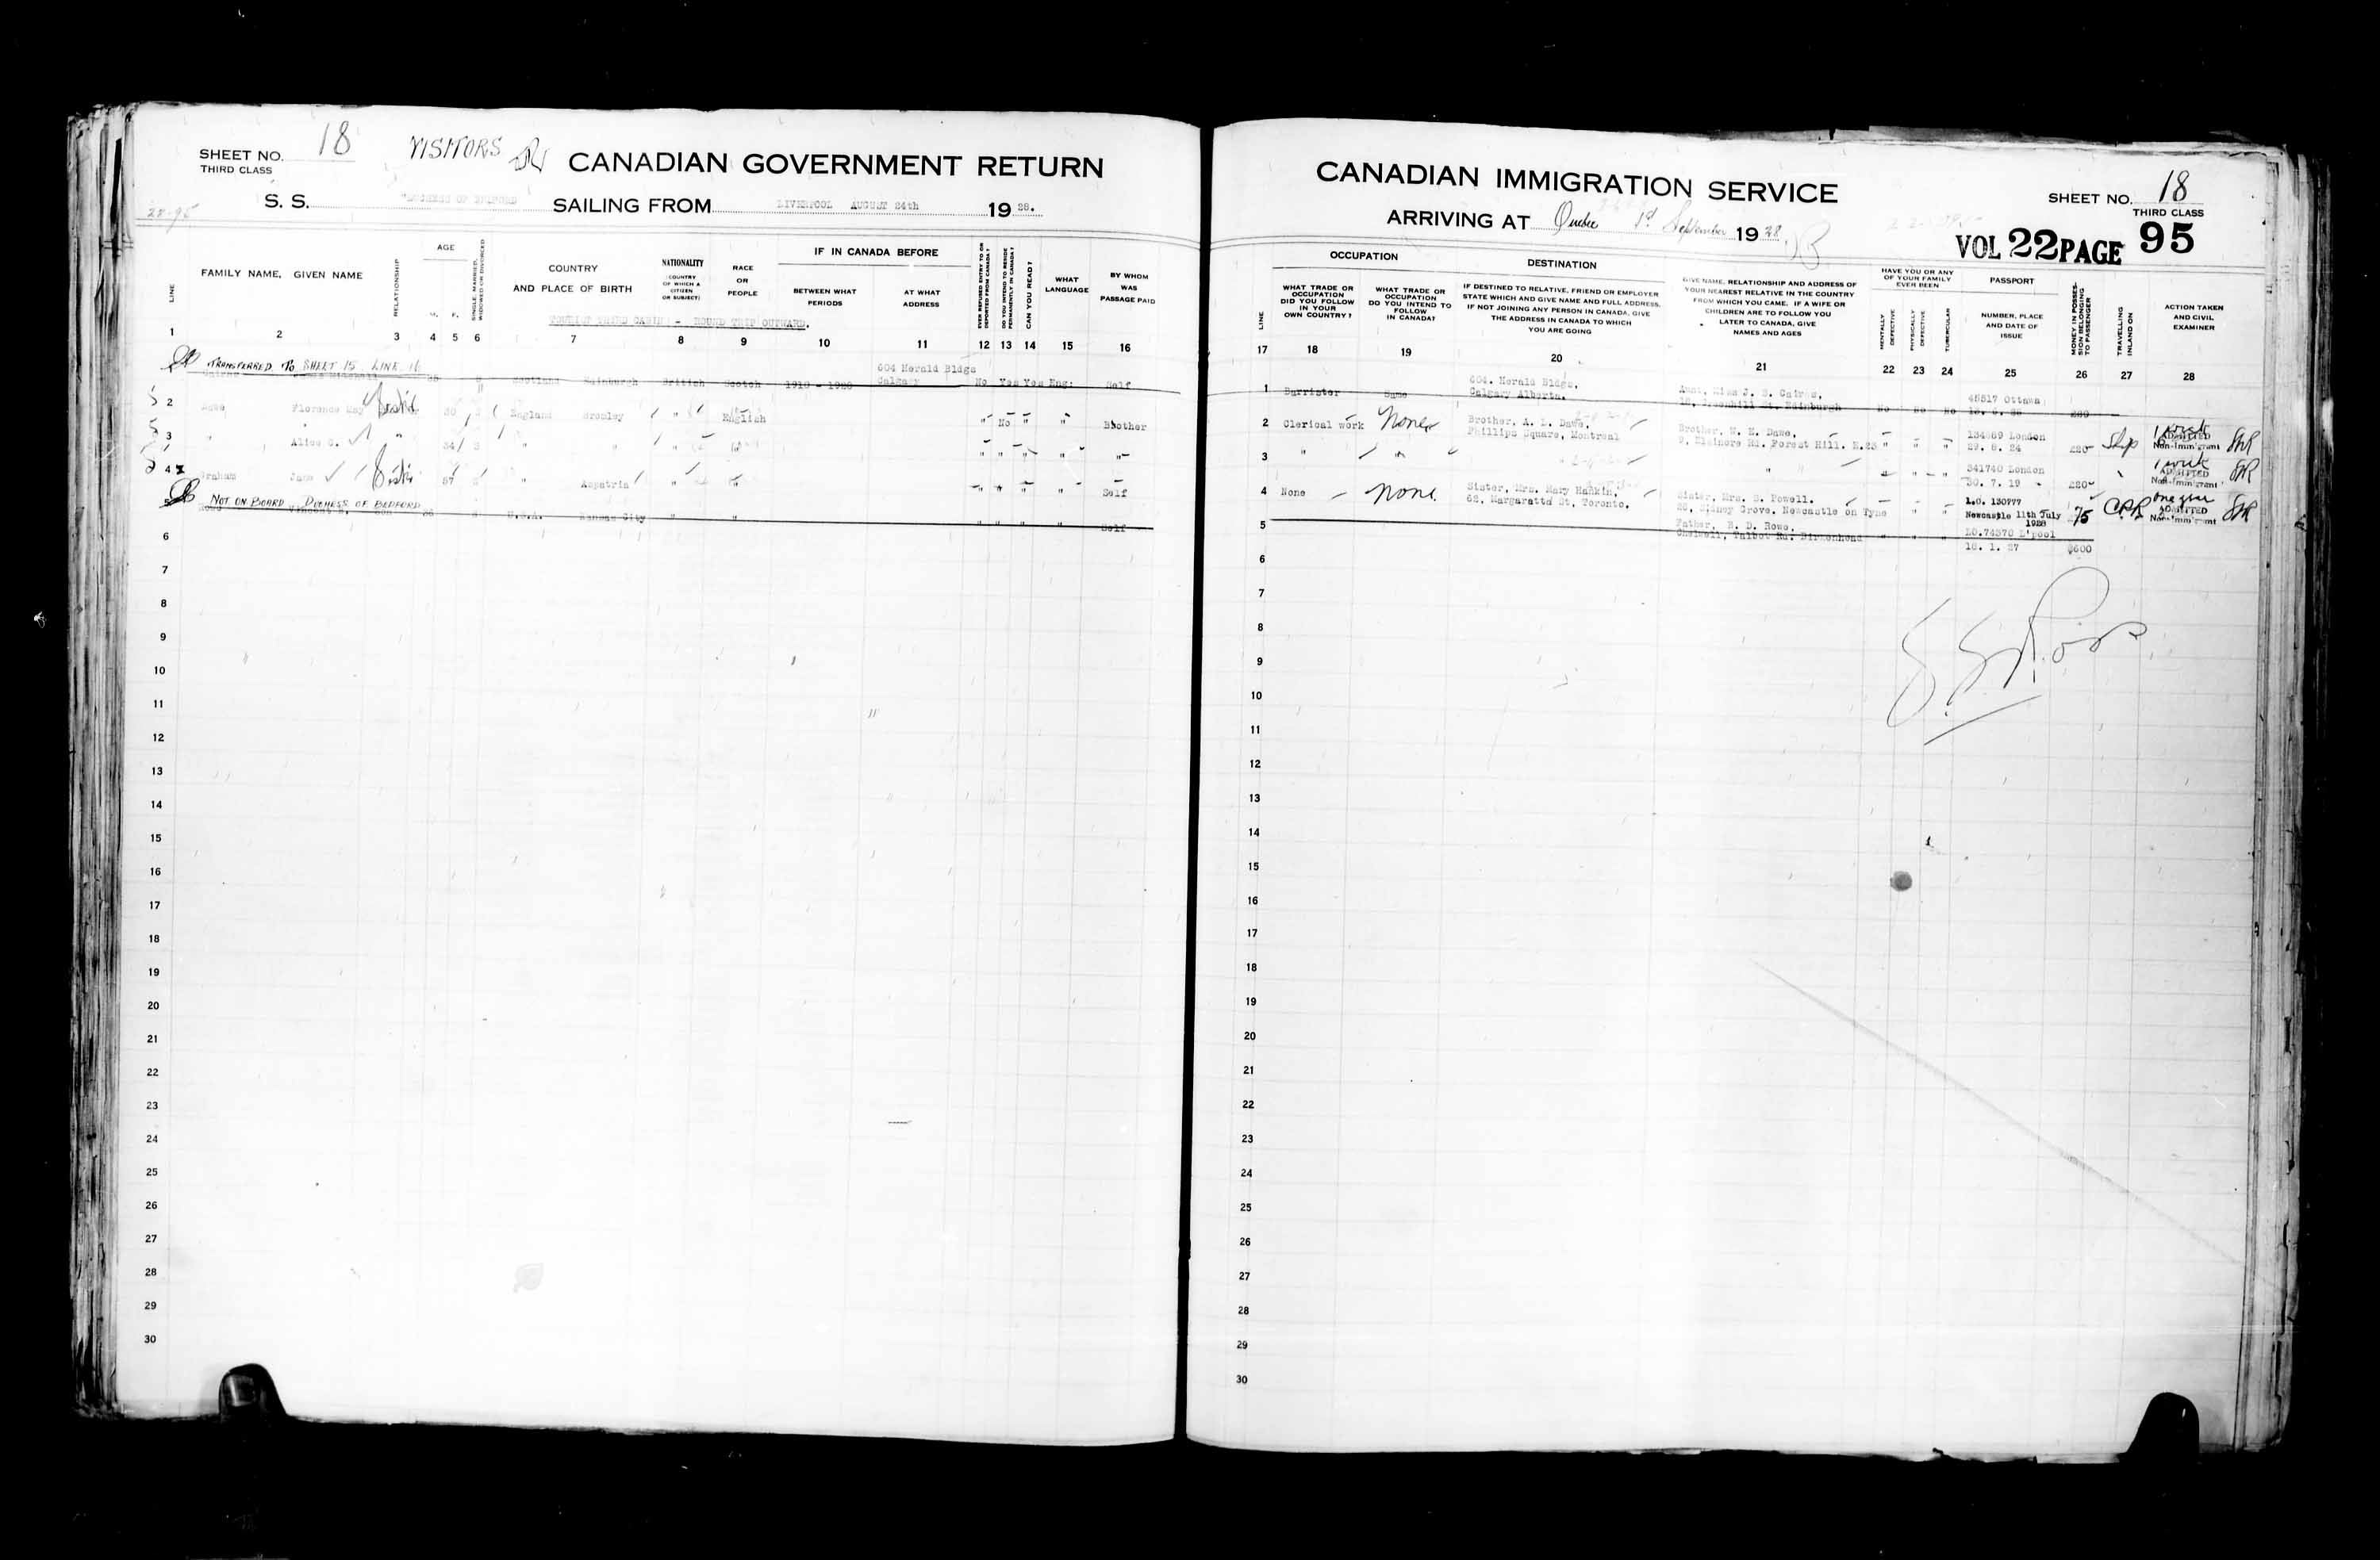 Title: Passenger Lists: Quebec City (1925-1935) - Mikan Number: 134839 - Microform: t-14747